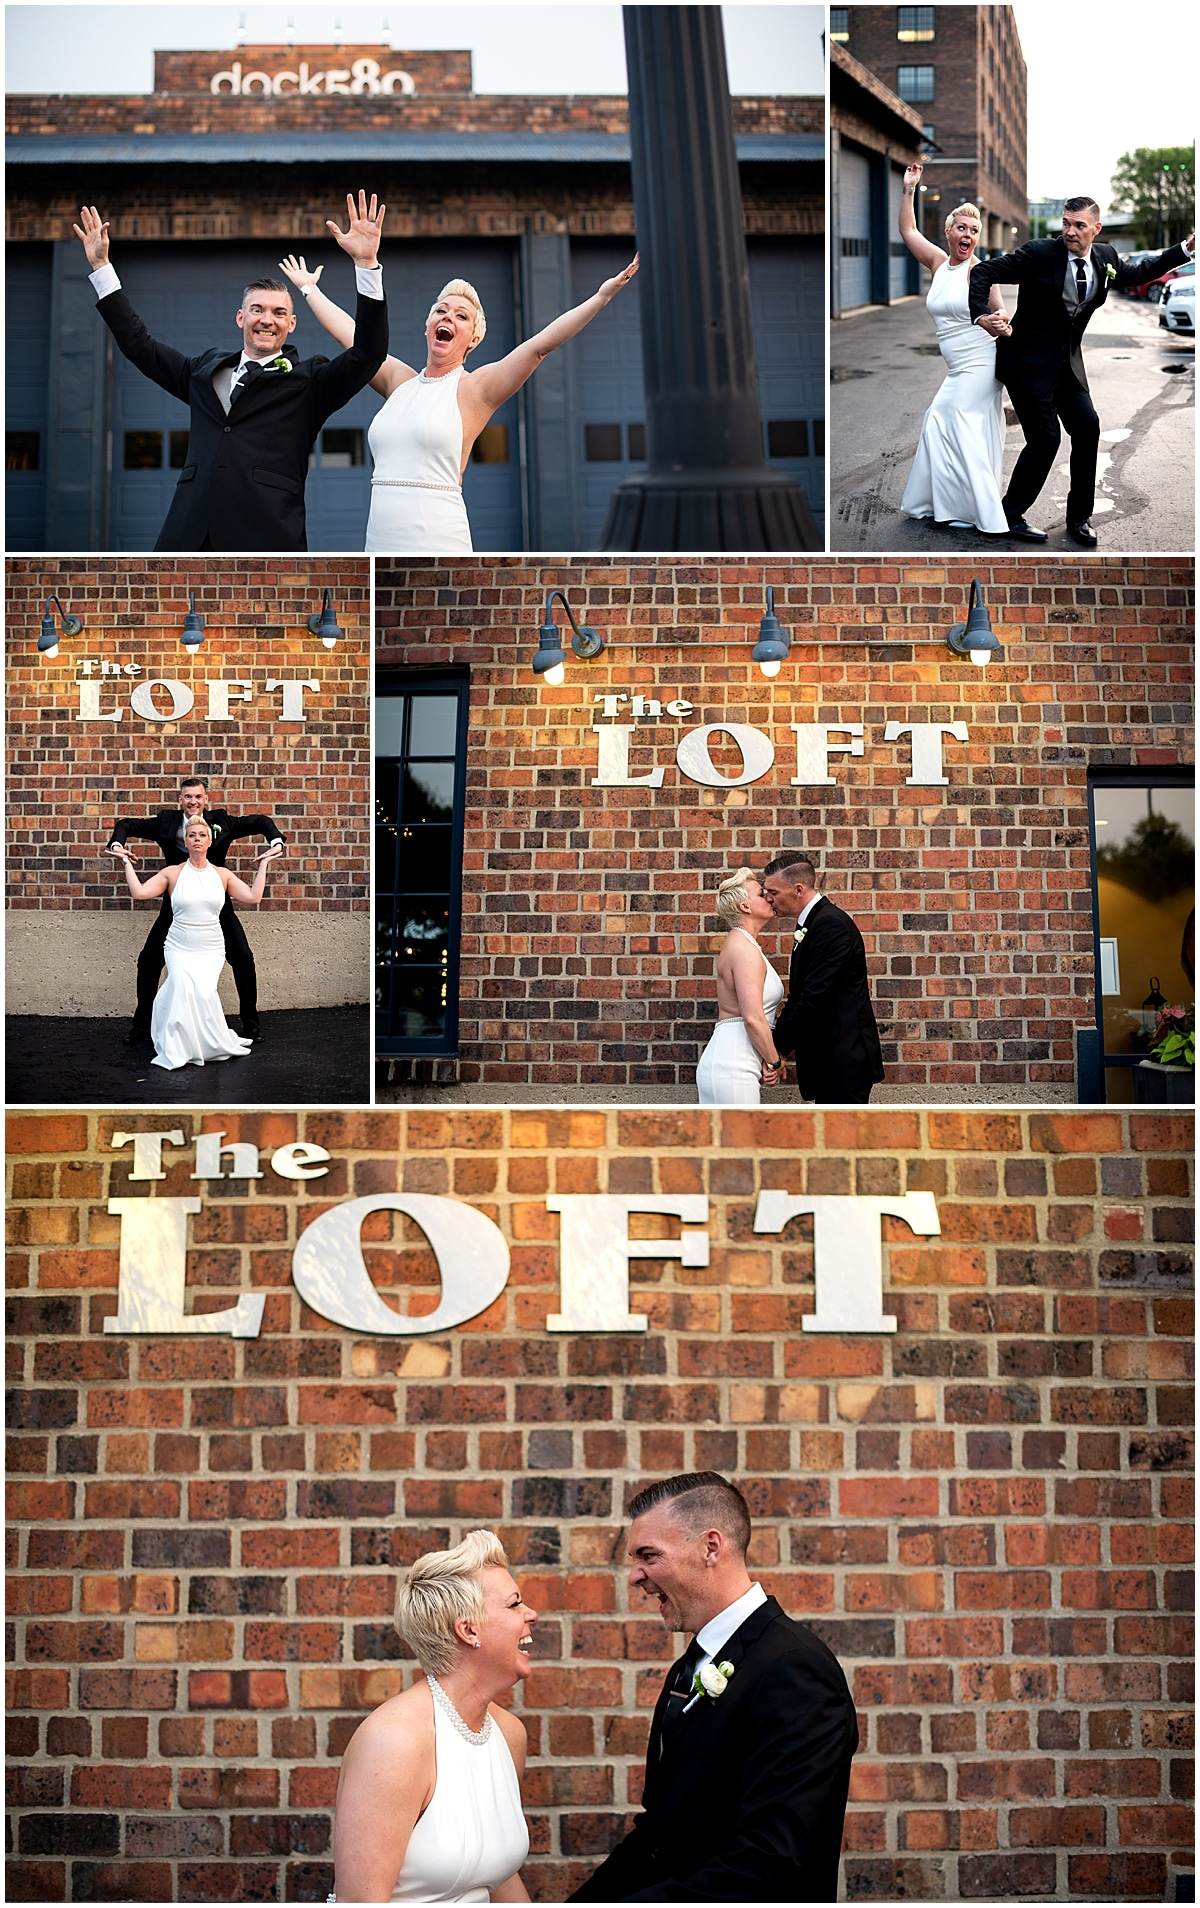 The loft at dock 580 wedding